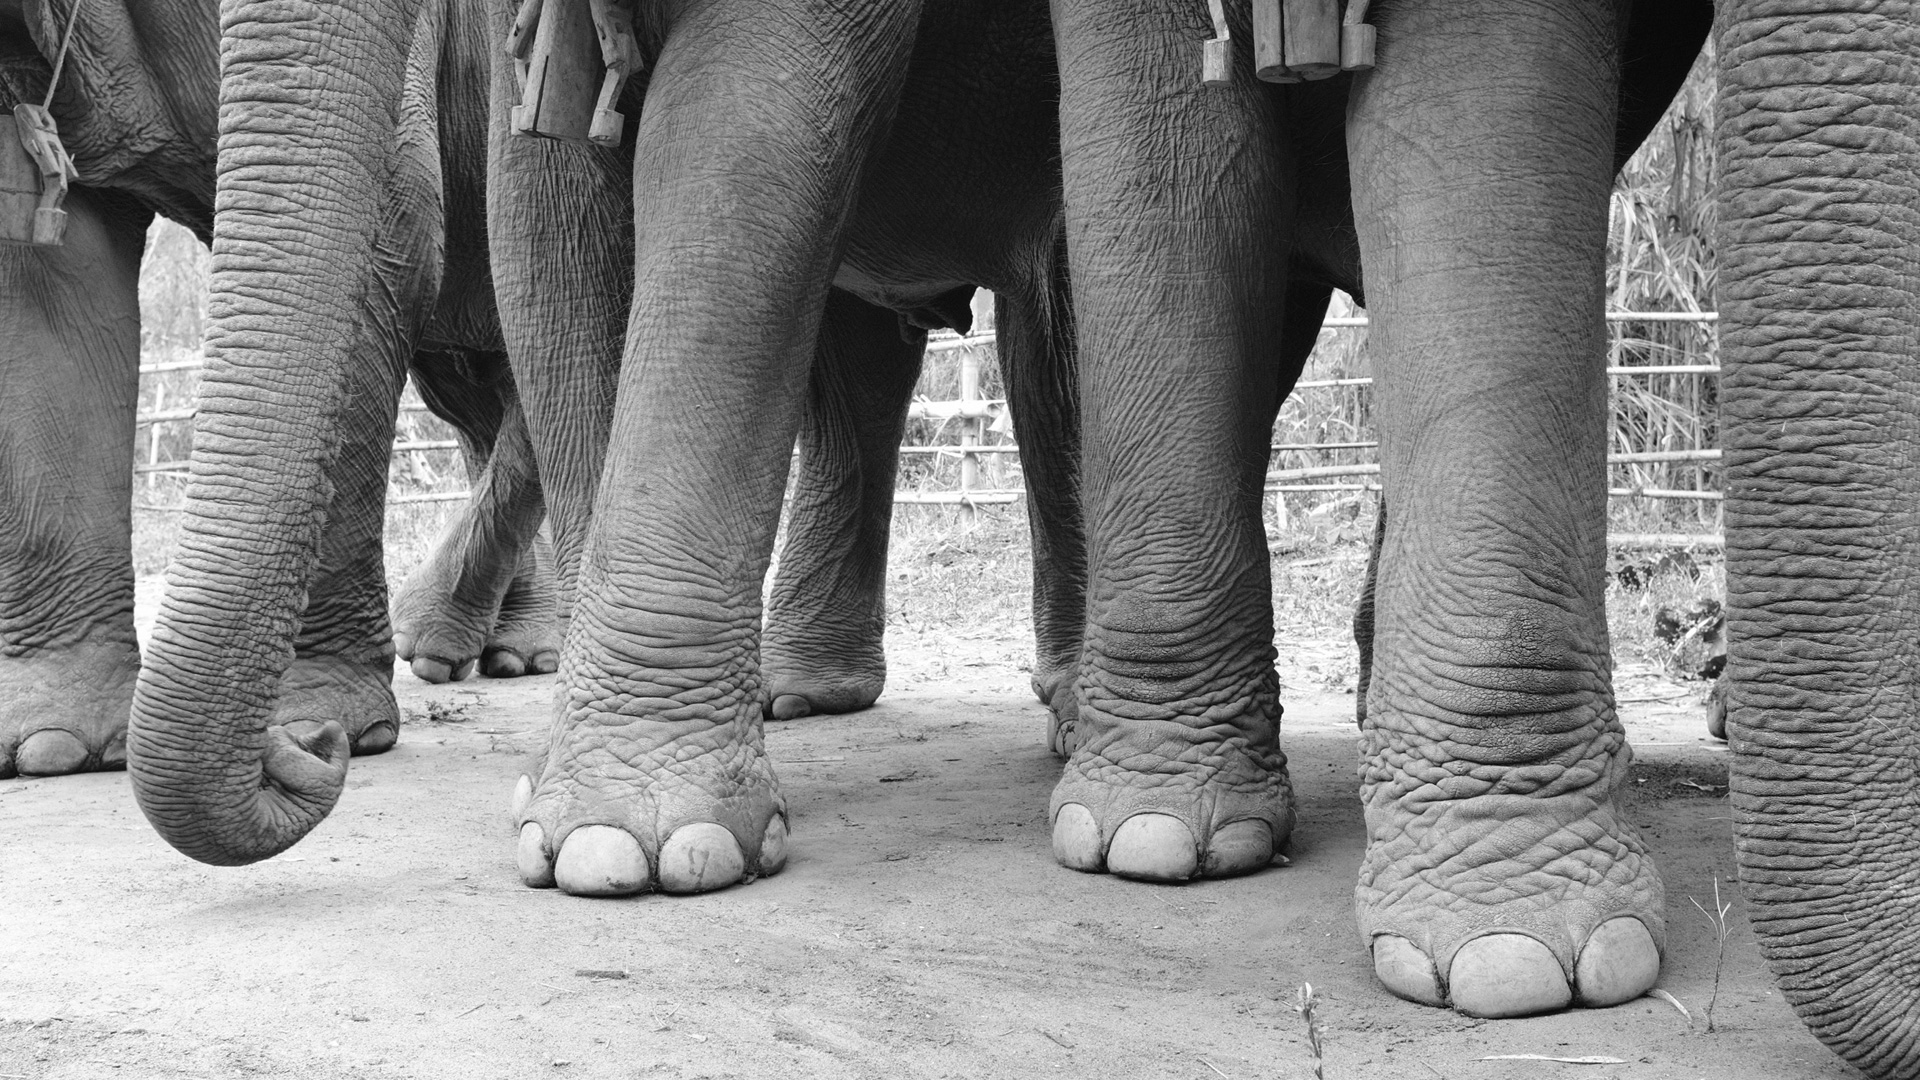 Asian elephants, Myanmar | © Charlie Scott